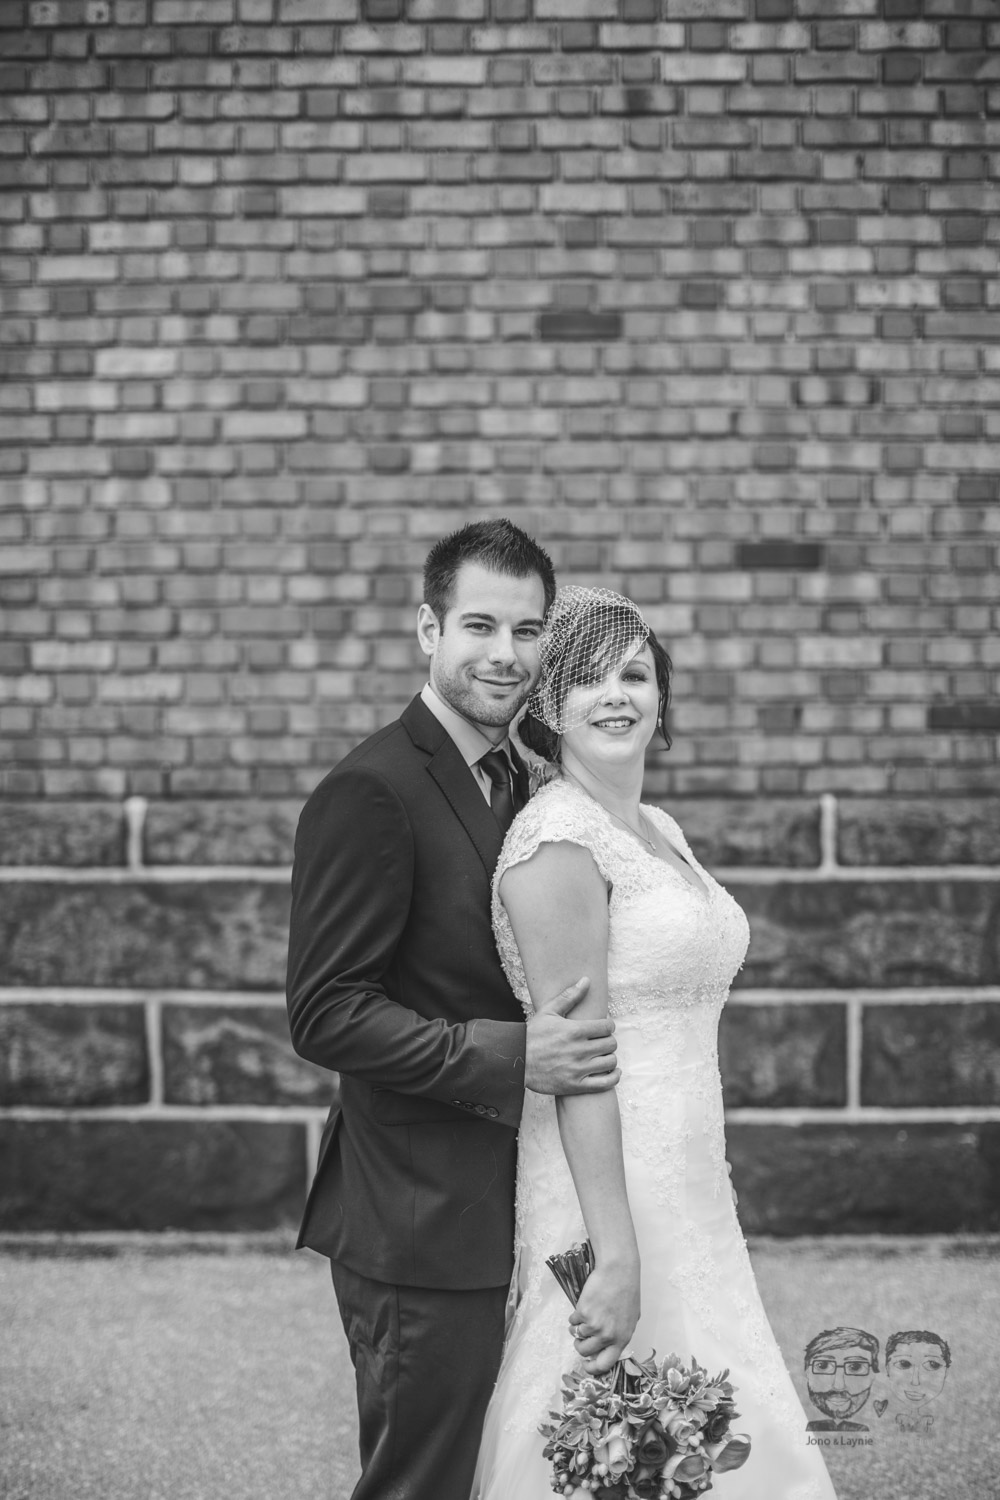 Brantford Wedding Photographer-Jono & Laynie082.jpg